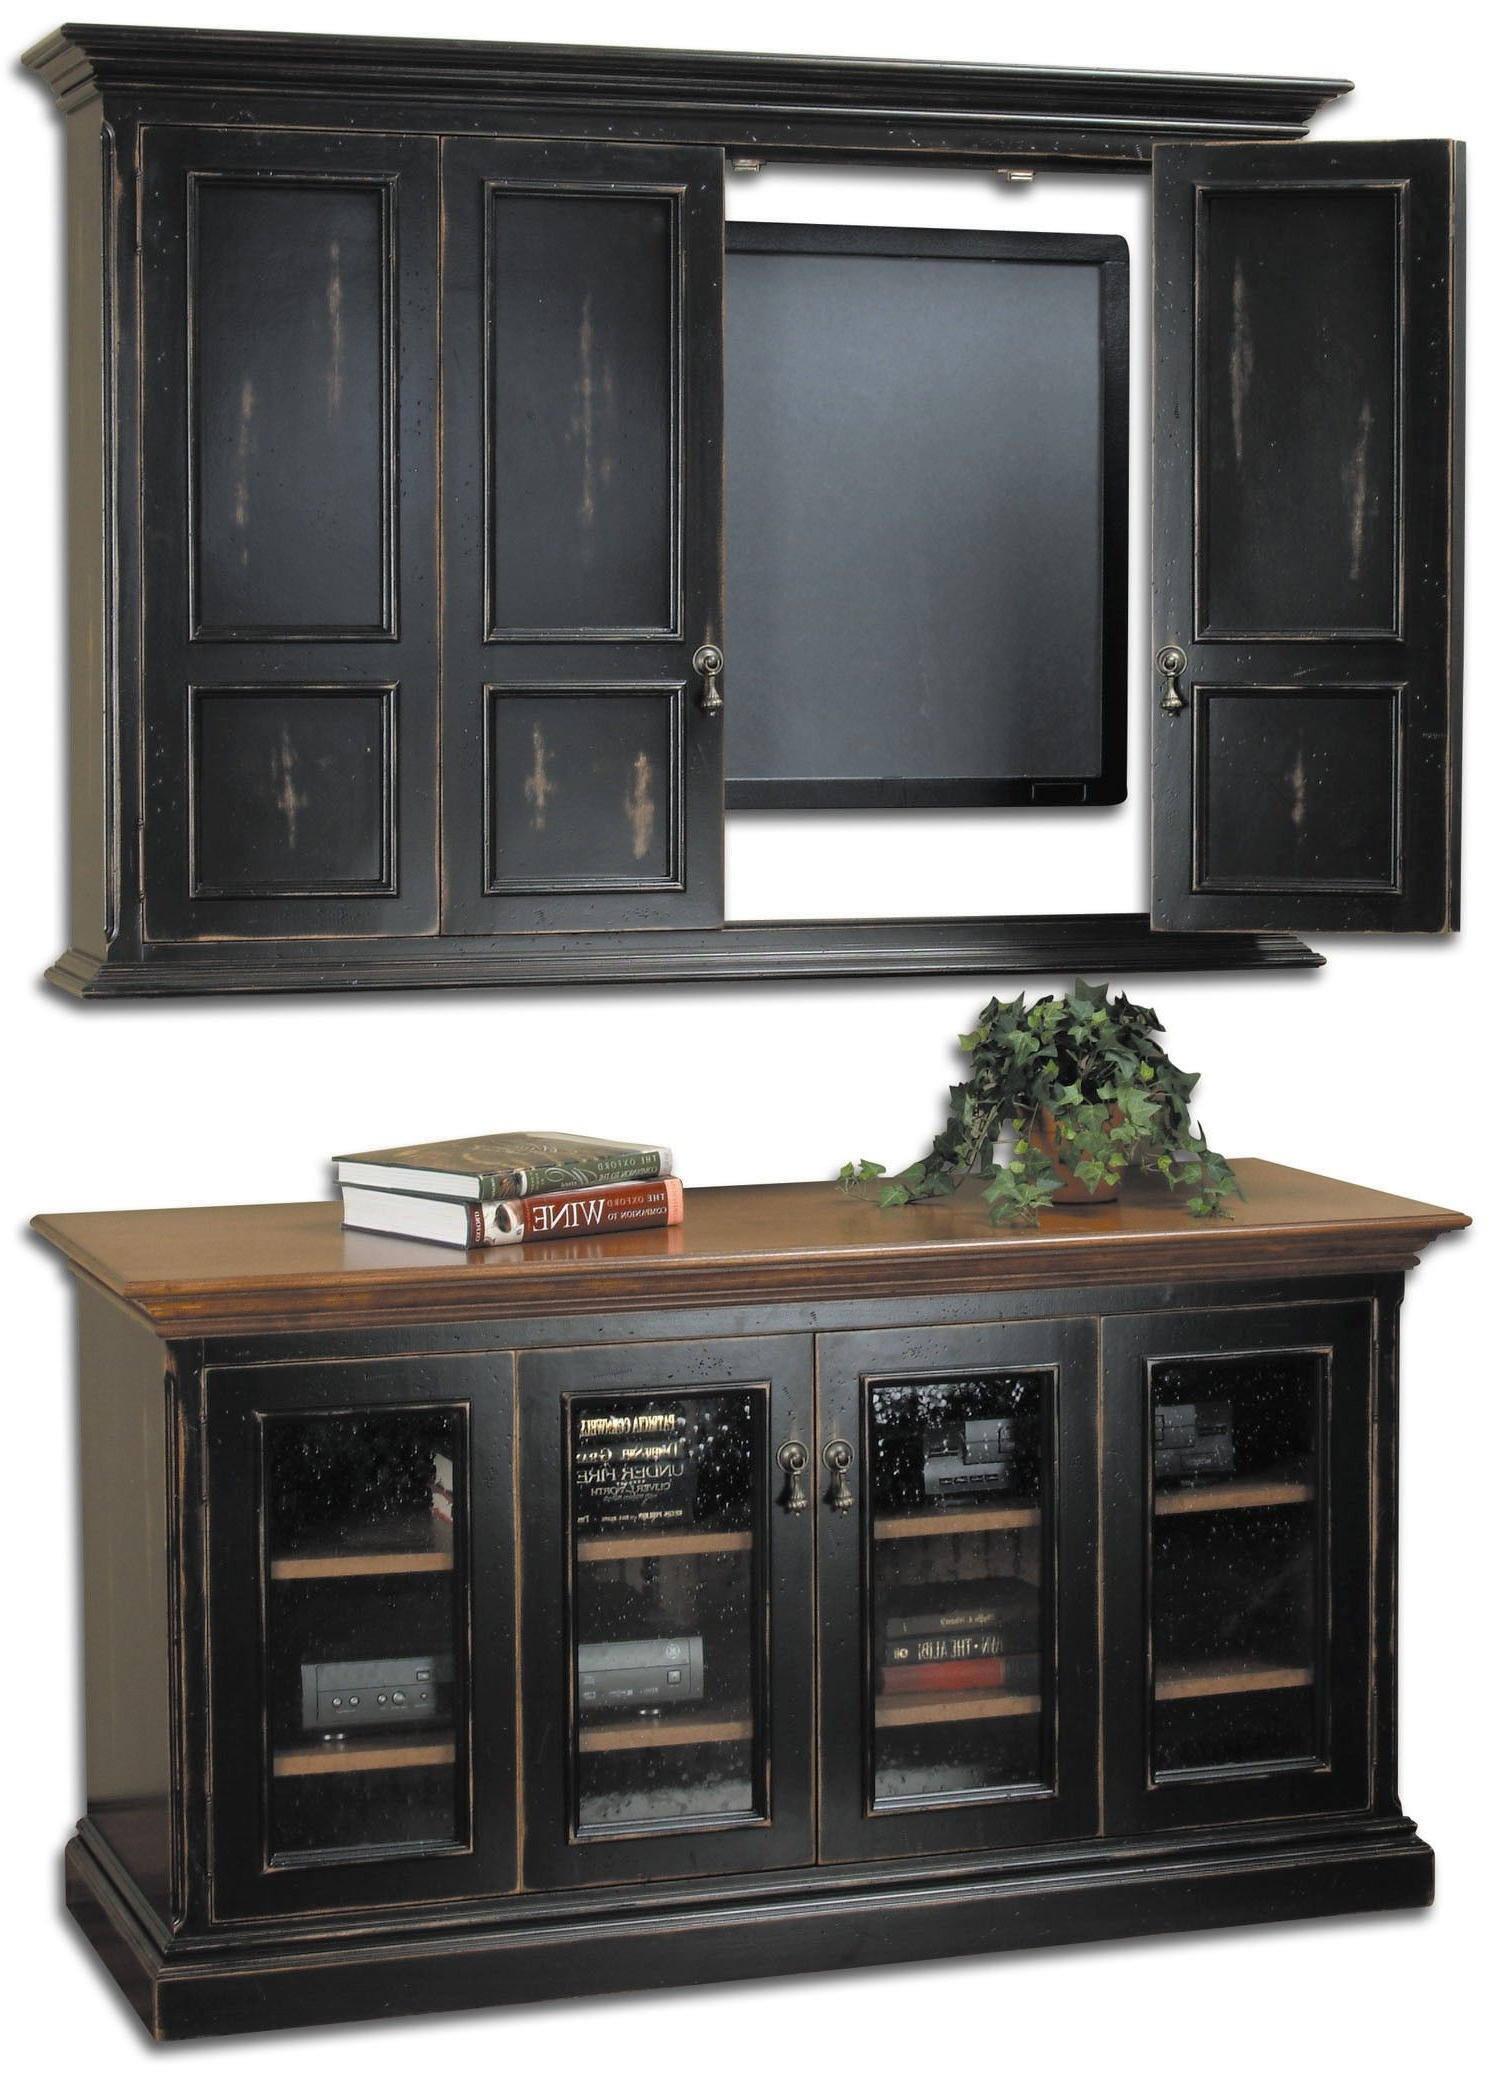 2018 Wall Mounted Tv Cabinets For Flat Screens With Doors Regarding Country Classics Painted Furniture, Hillsboro Flat Screen Tv Wall (Gallery 16 of 20)